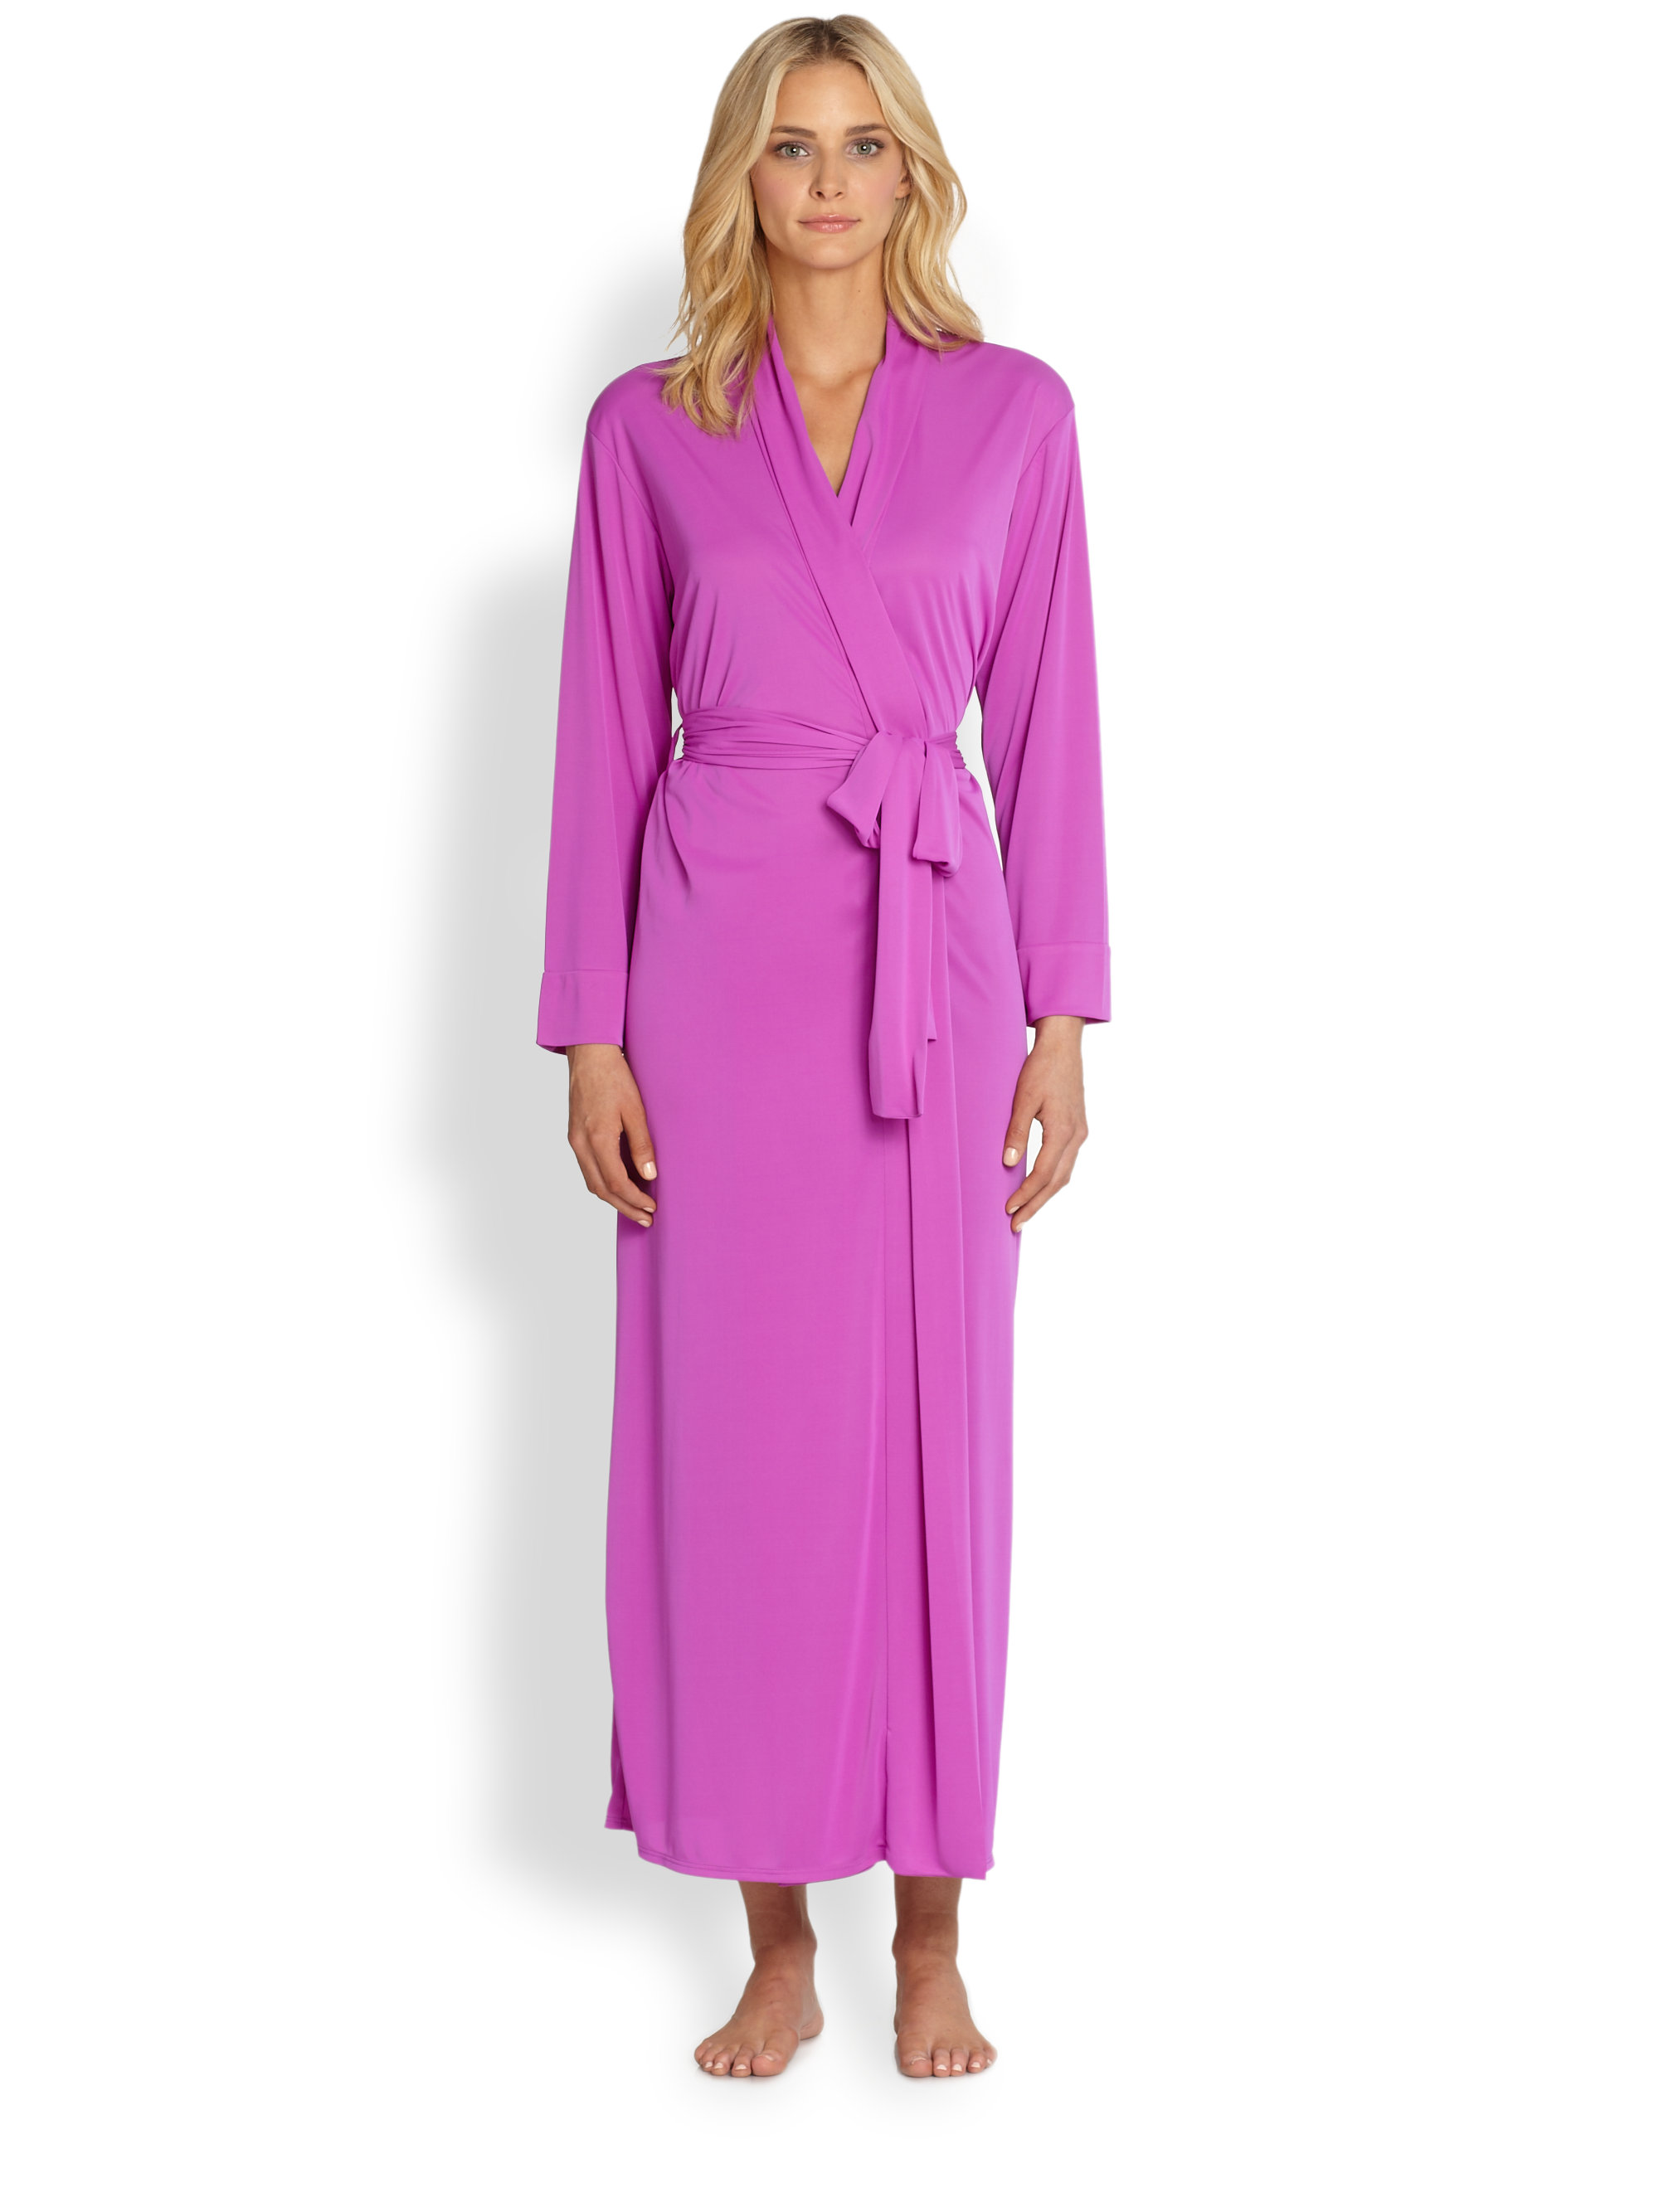 Lyst - Natori Aphrodite Robe in Purple